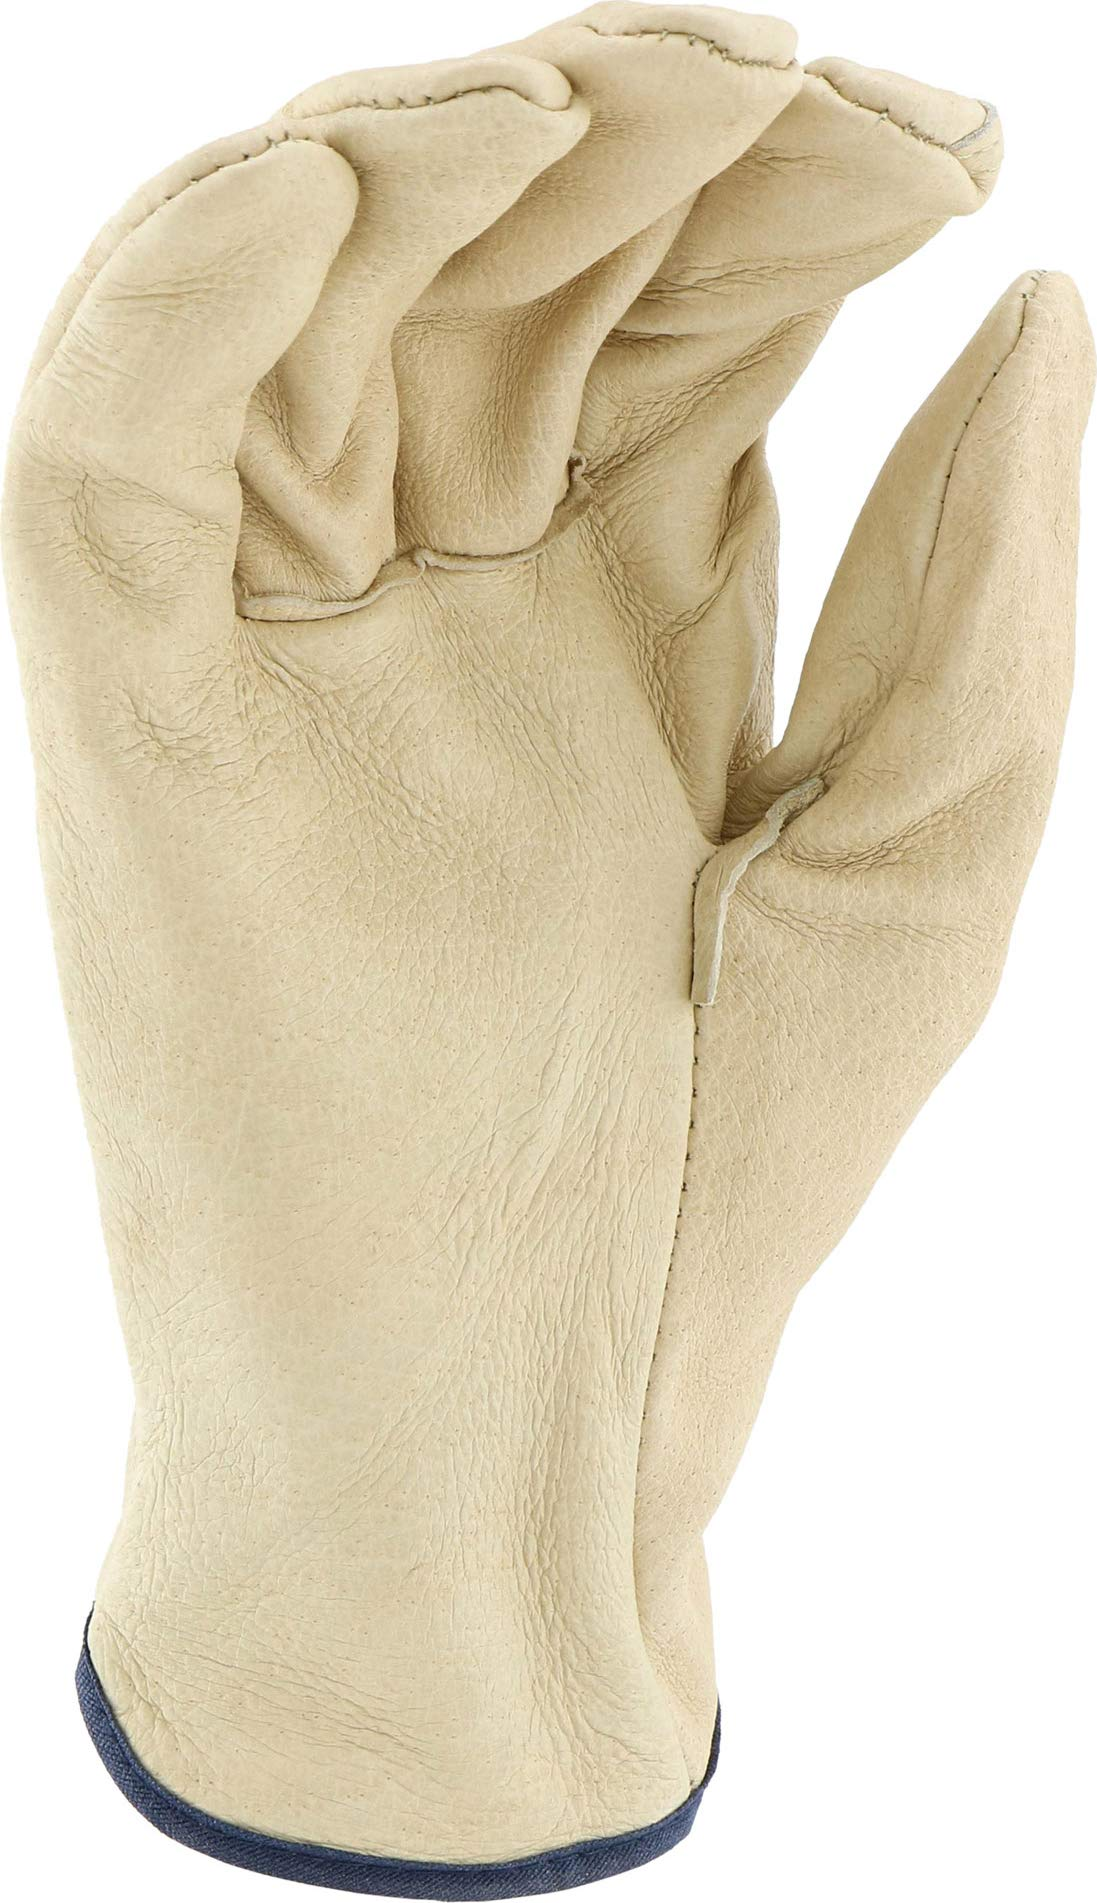 West Chester 994 Select Grain Pigskin Leather Driver Work Gloves: Straight Thumb, Large, 12 Pairs by West Chester (Image #5)